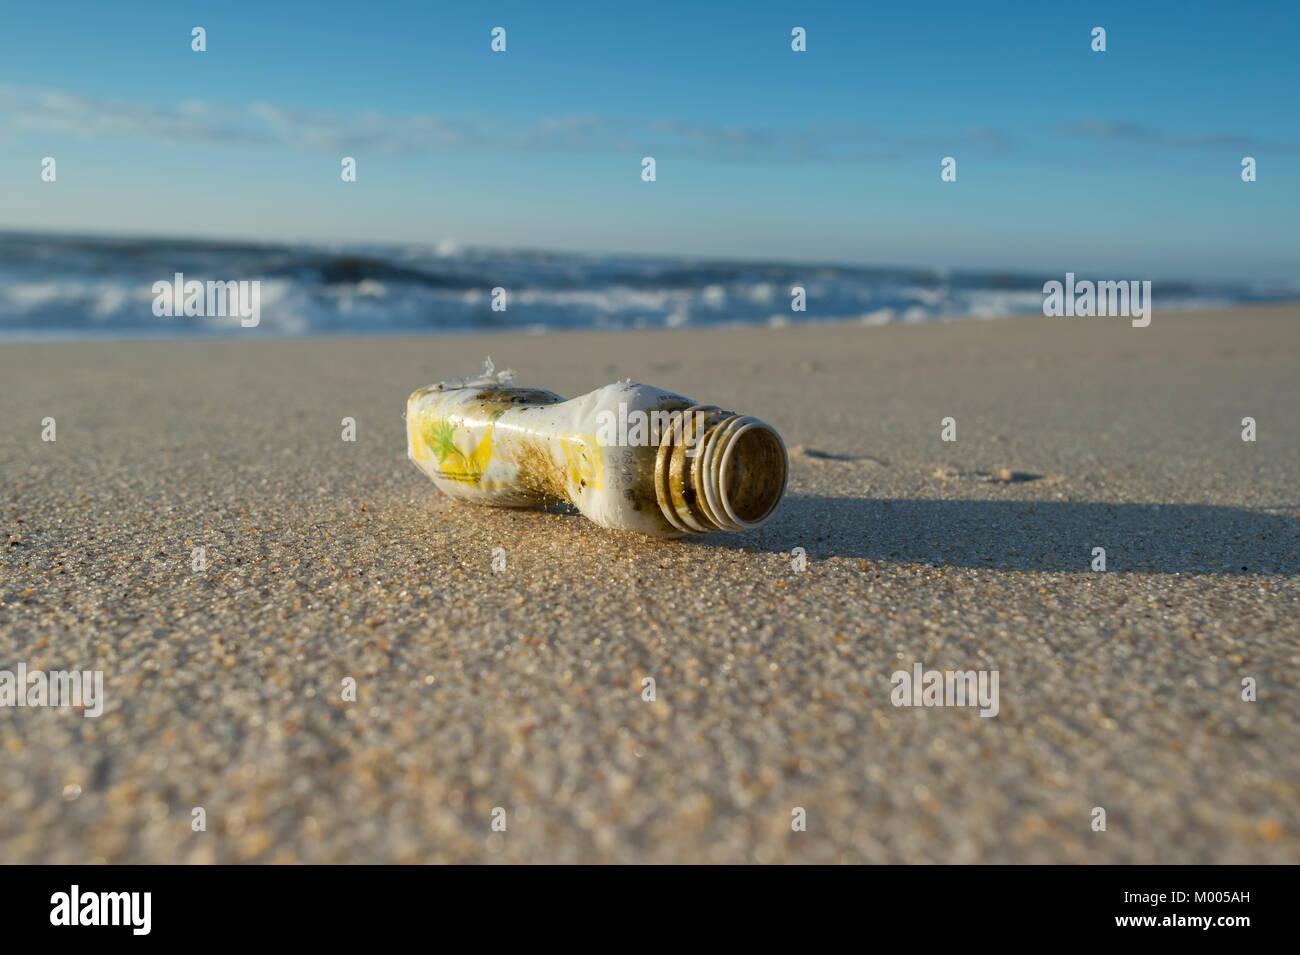 plastic bottle washed up on a deserted beach, Ocean pollution with non-recyclable plastic. - Stock Image